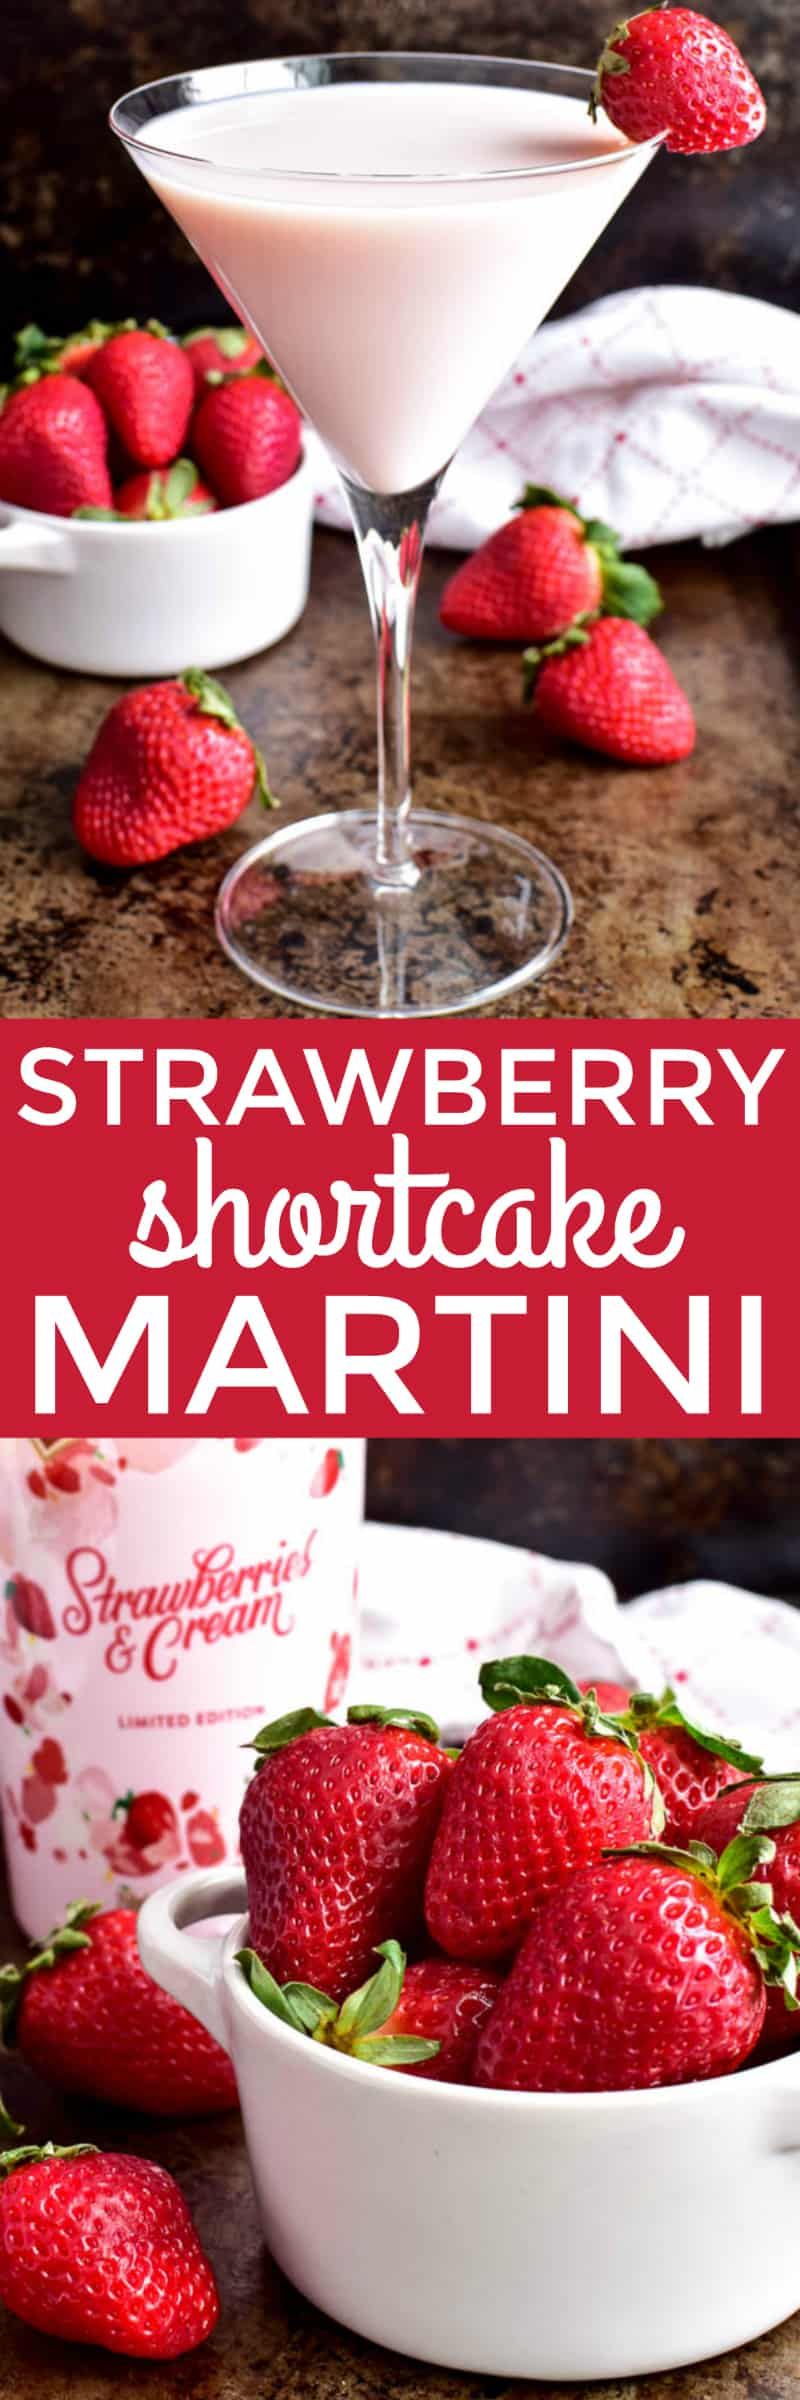 Collage image of Strawberry Shortcake Martini & fresh strawberries